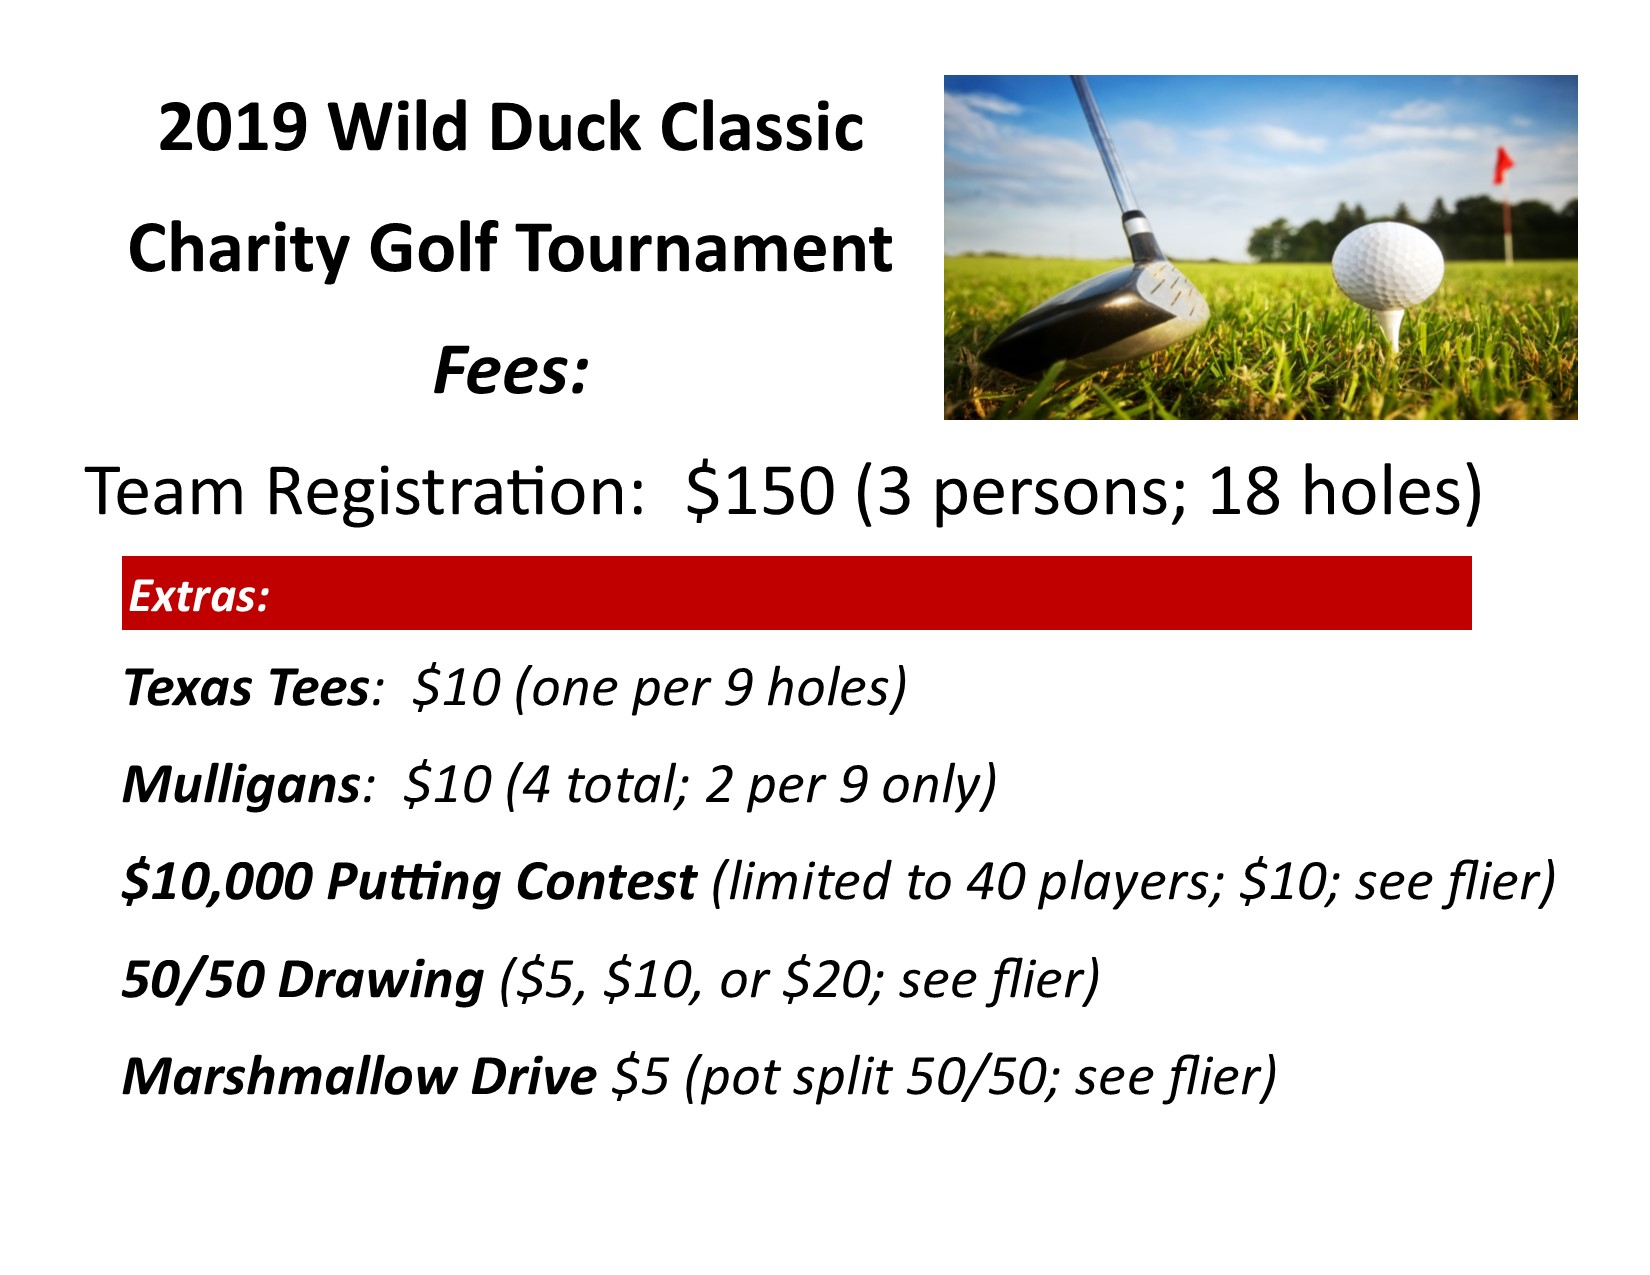 2019 Wild Duck Classic Golf Tournament Registration Costs flier